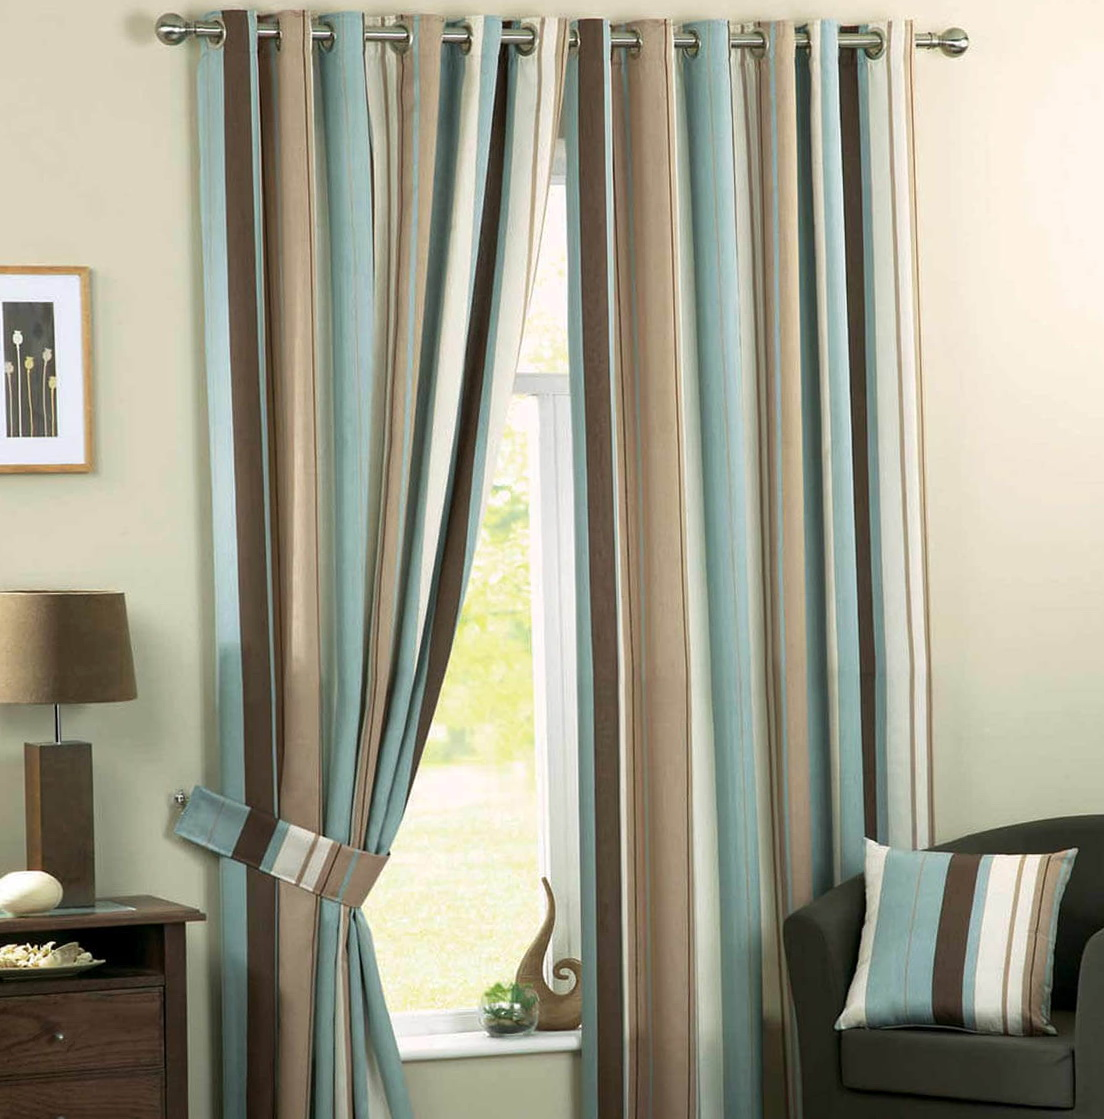 duck egg blue and brown curtains home design ideas. Black Bedroom Furniture Sets. Home Design Ideas